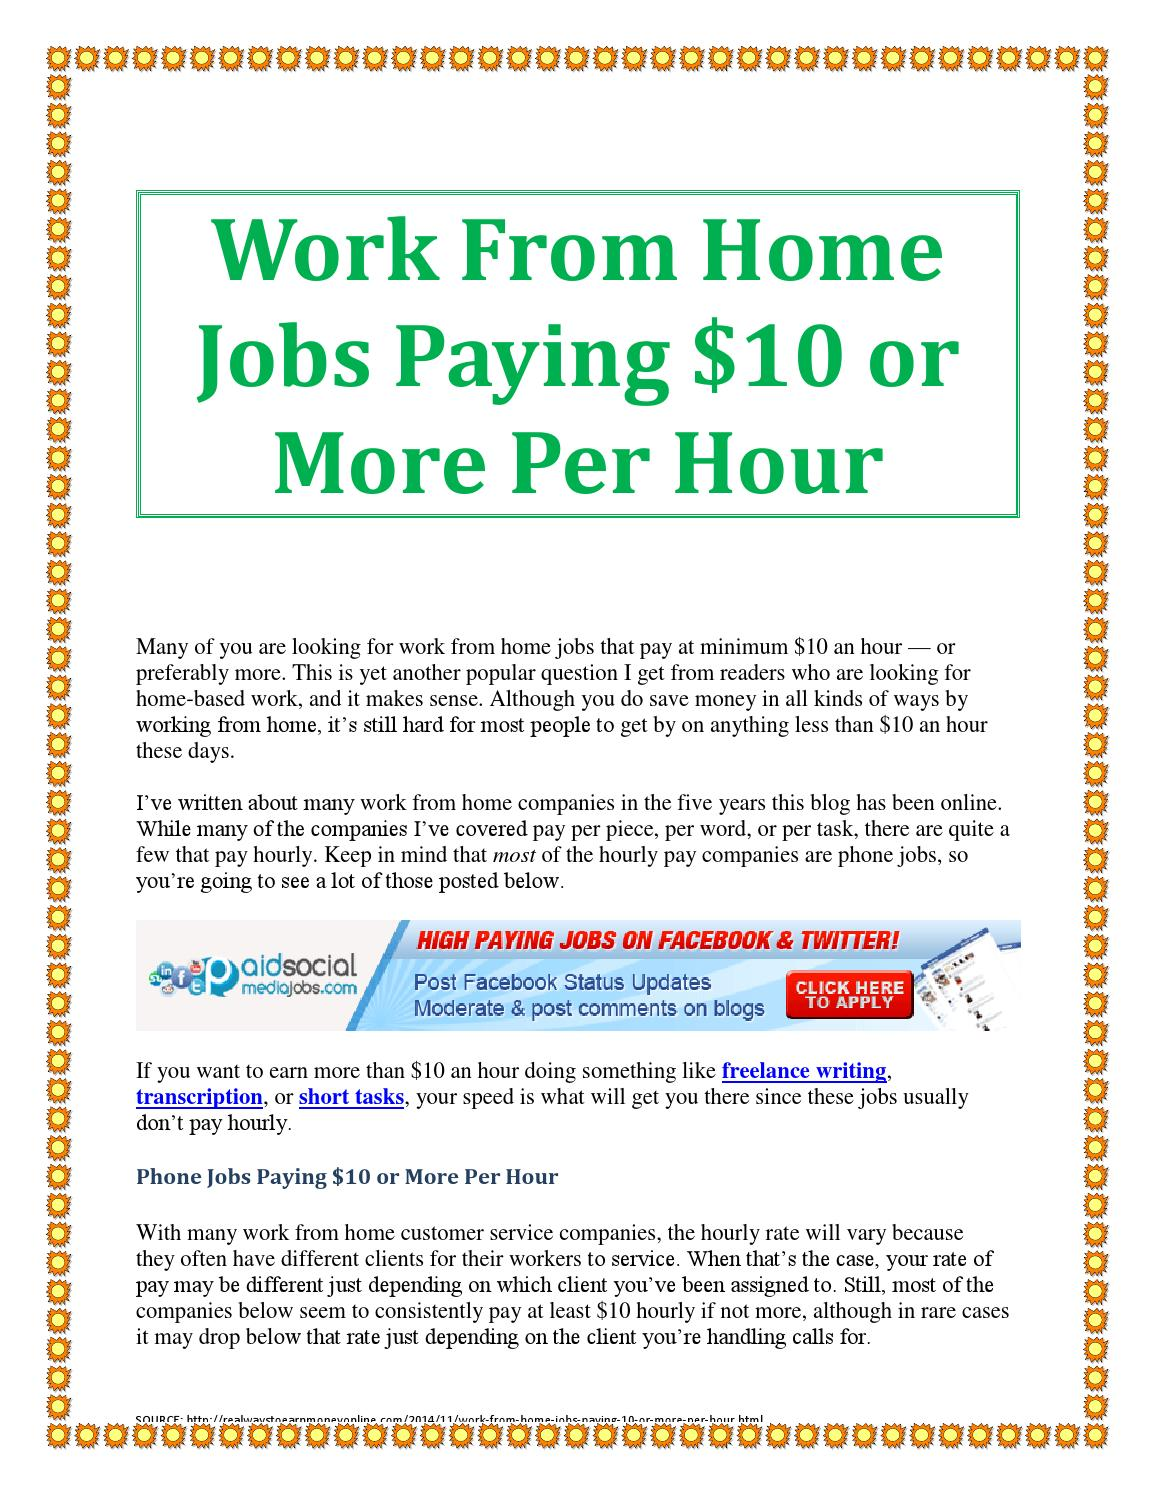 40+ Work from home jobs paying $10 or more per hour by Moazzem